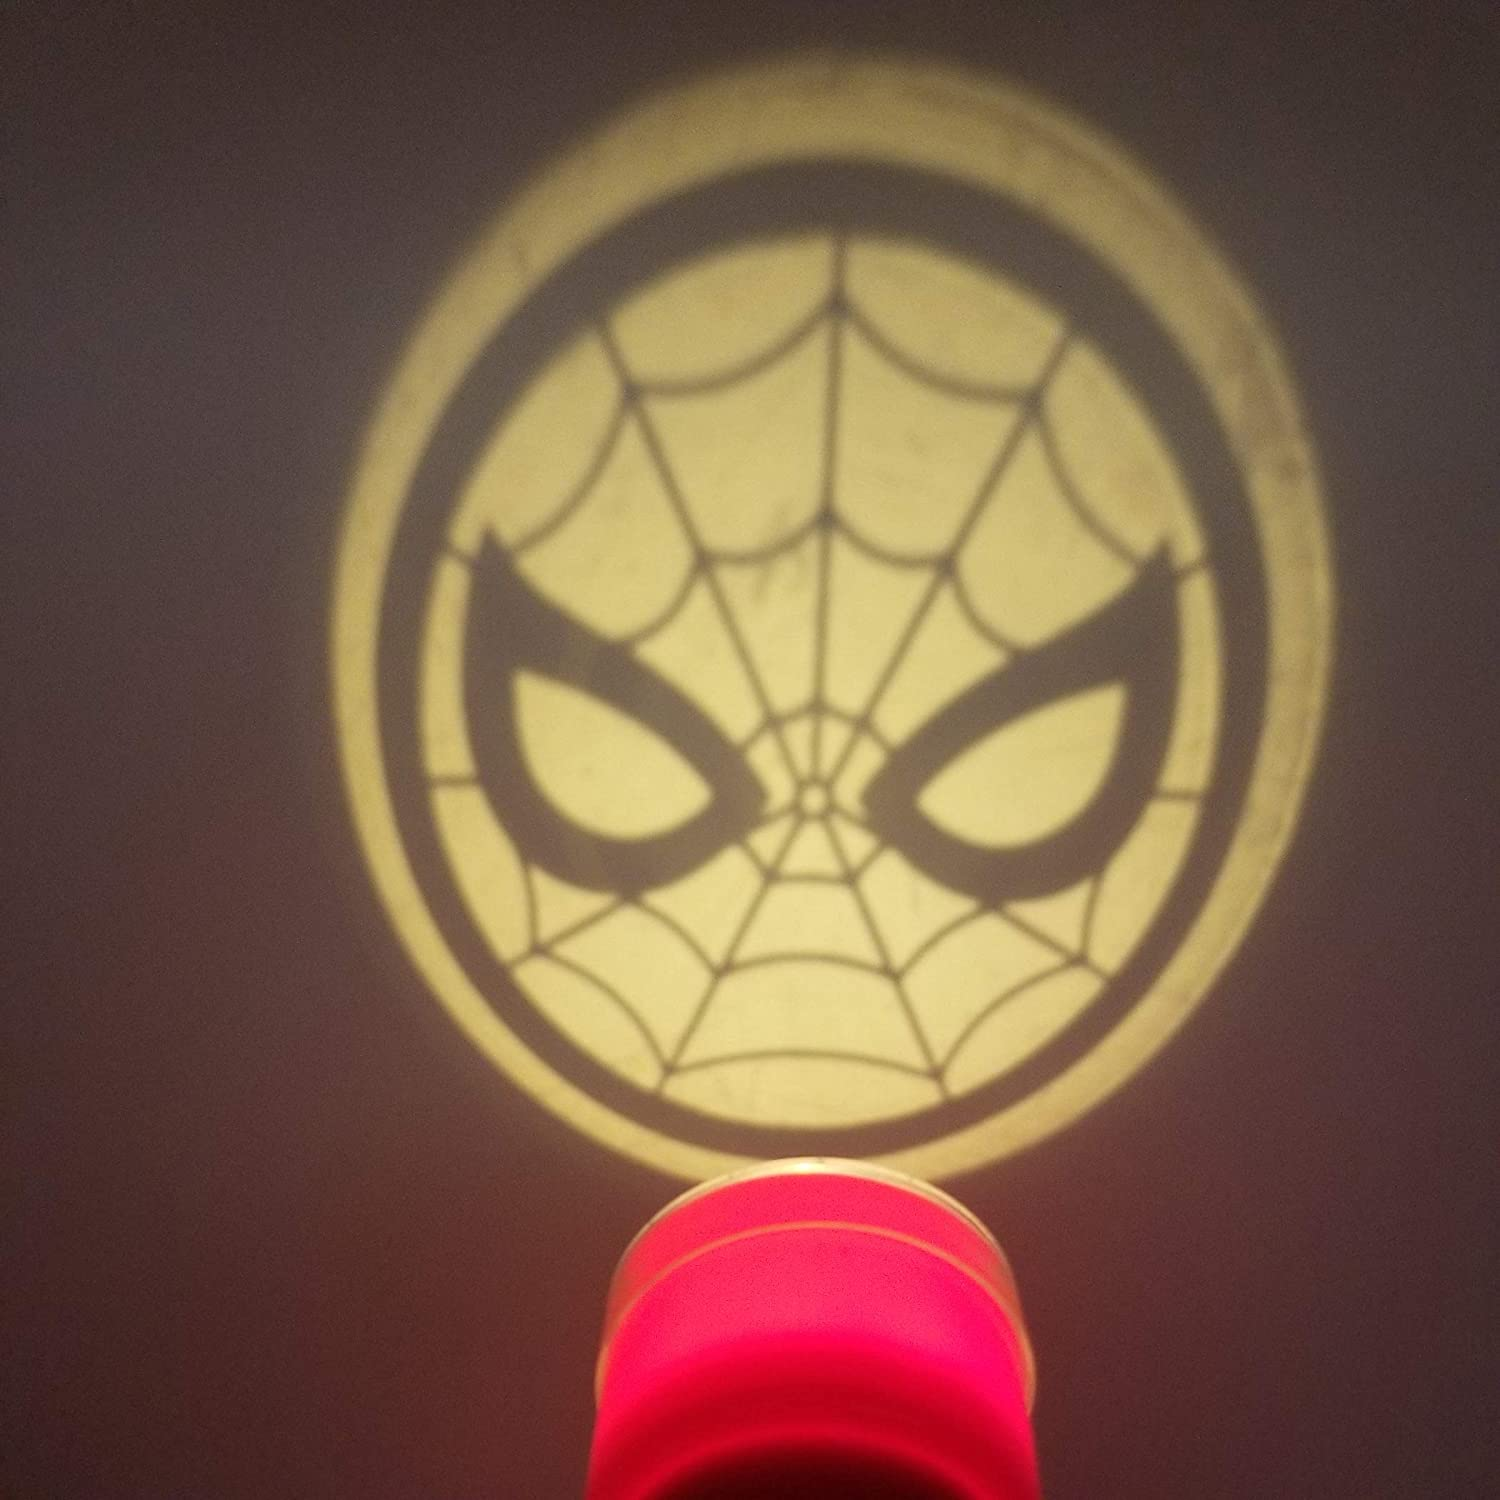 Halloween Safety Trick or Treat Spiderman Marvel Handheld Flashlight Projector Light with Character Lens Night Light or Play